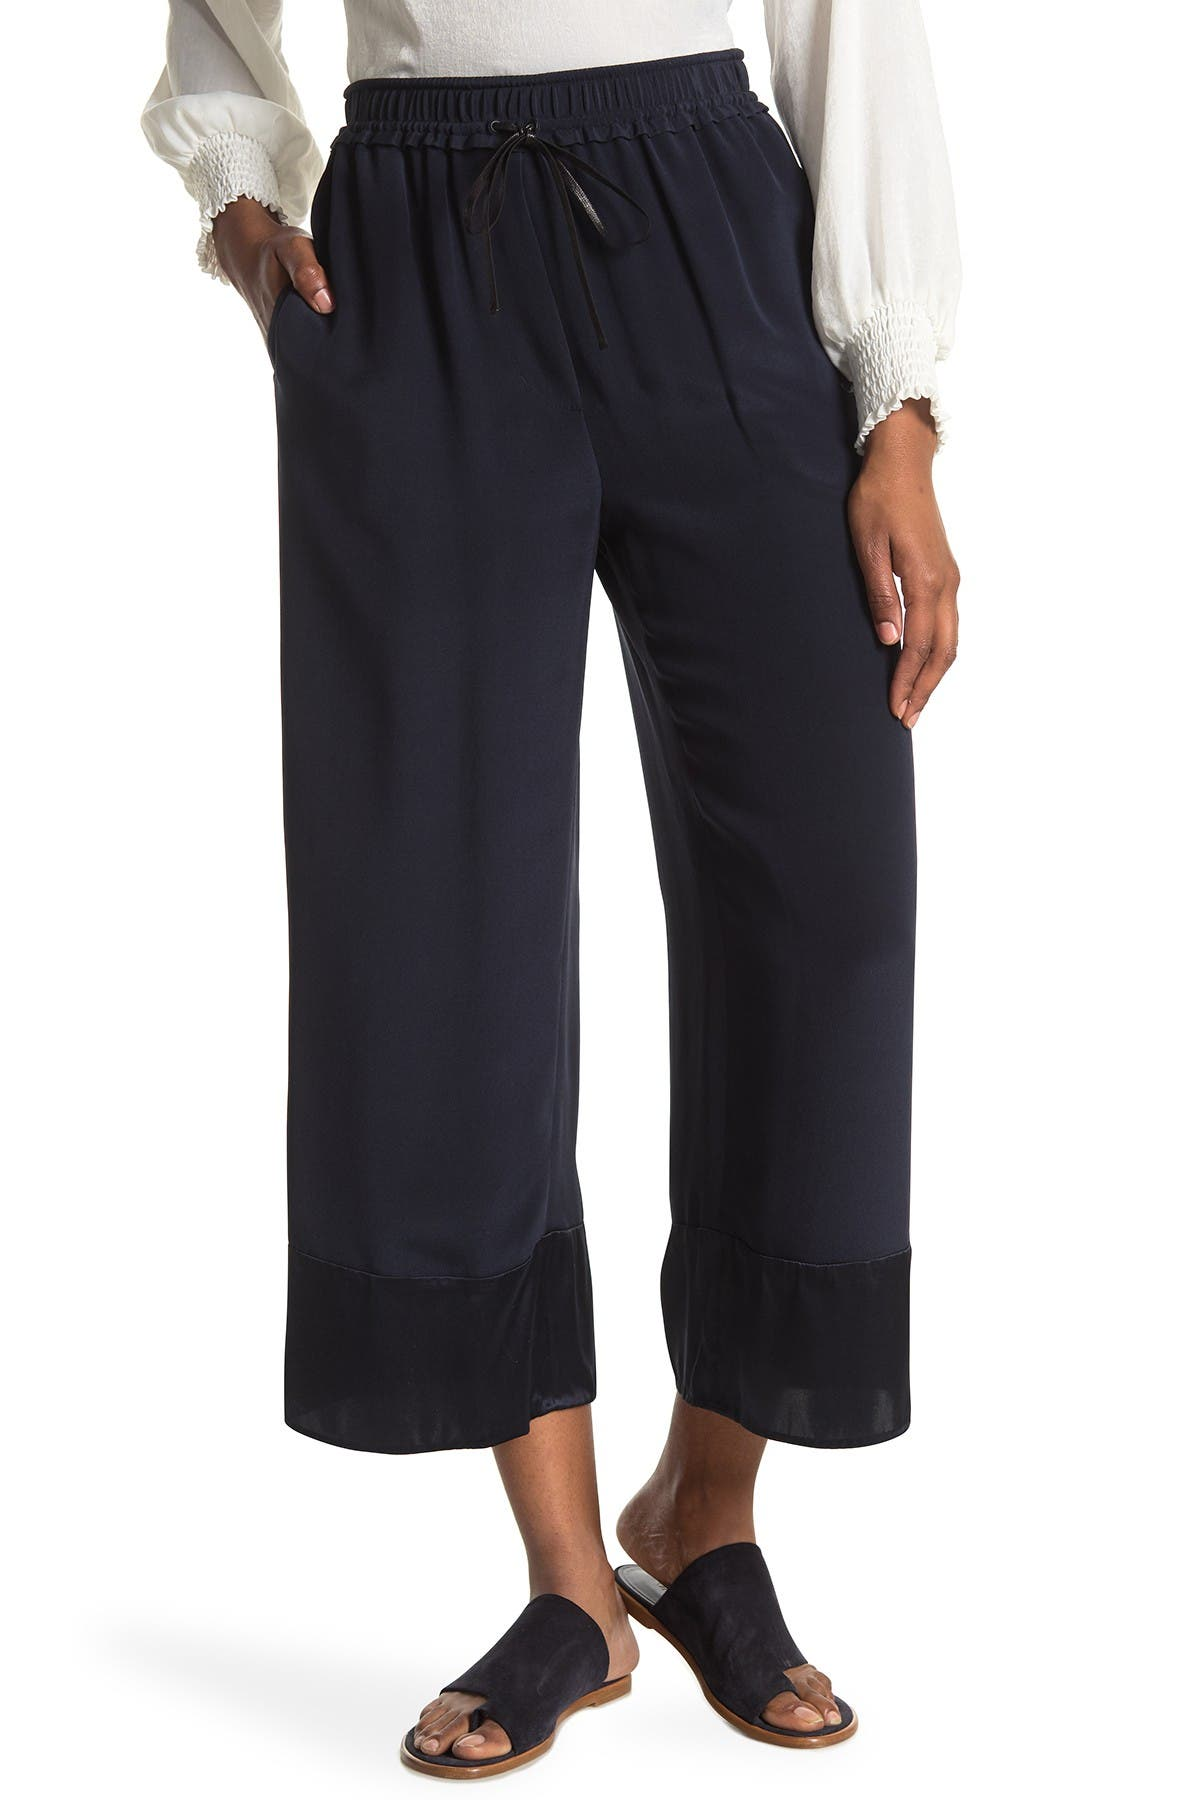 Image of 3.1 PHILLIP LIM Pull-On Wide Leg Cropped Silk Pants